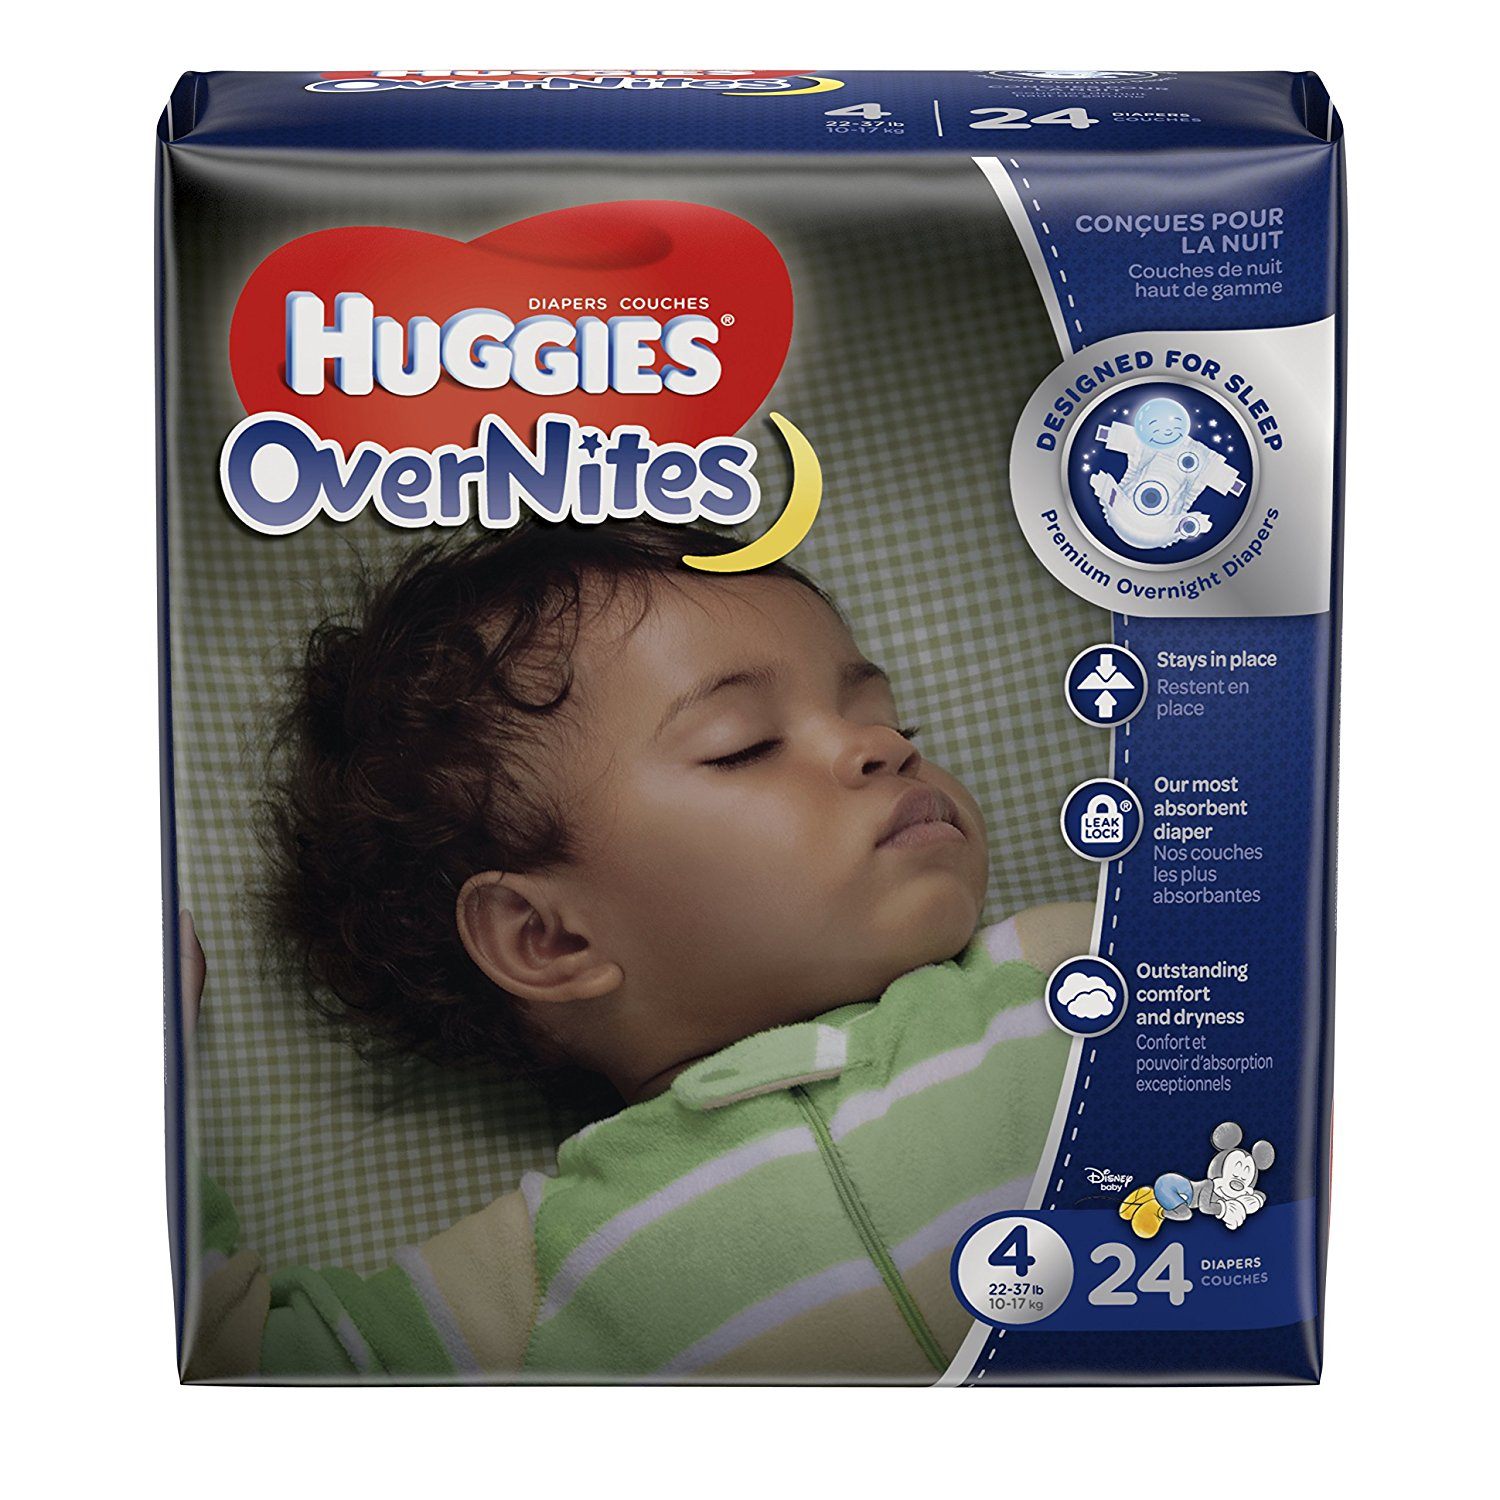 OverNites Diapers, Size 4, 24 ct., Overnight Diapers, Designed for sleep, and a sounder sleep for baby is guaranteed or your money back* By HUGGIES Ship from US